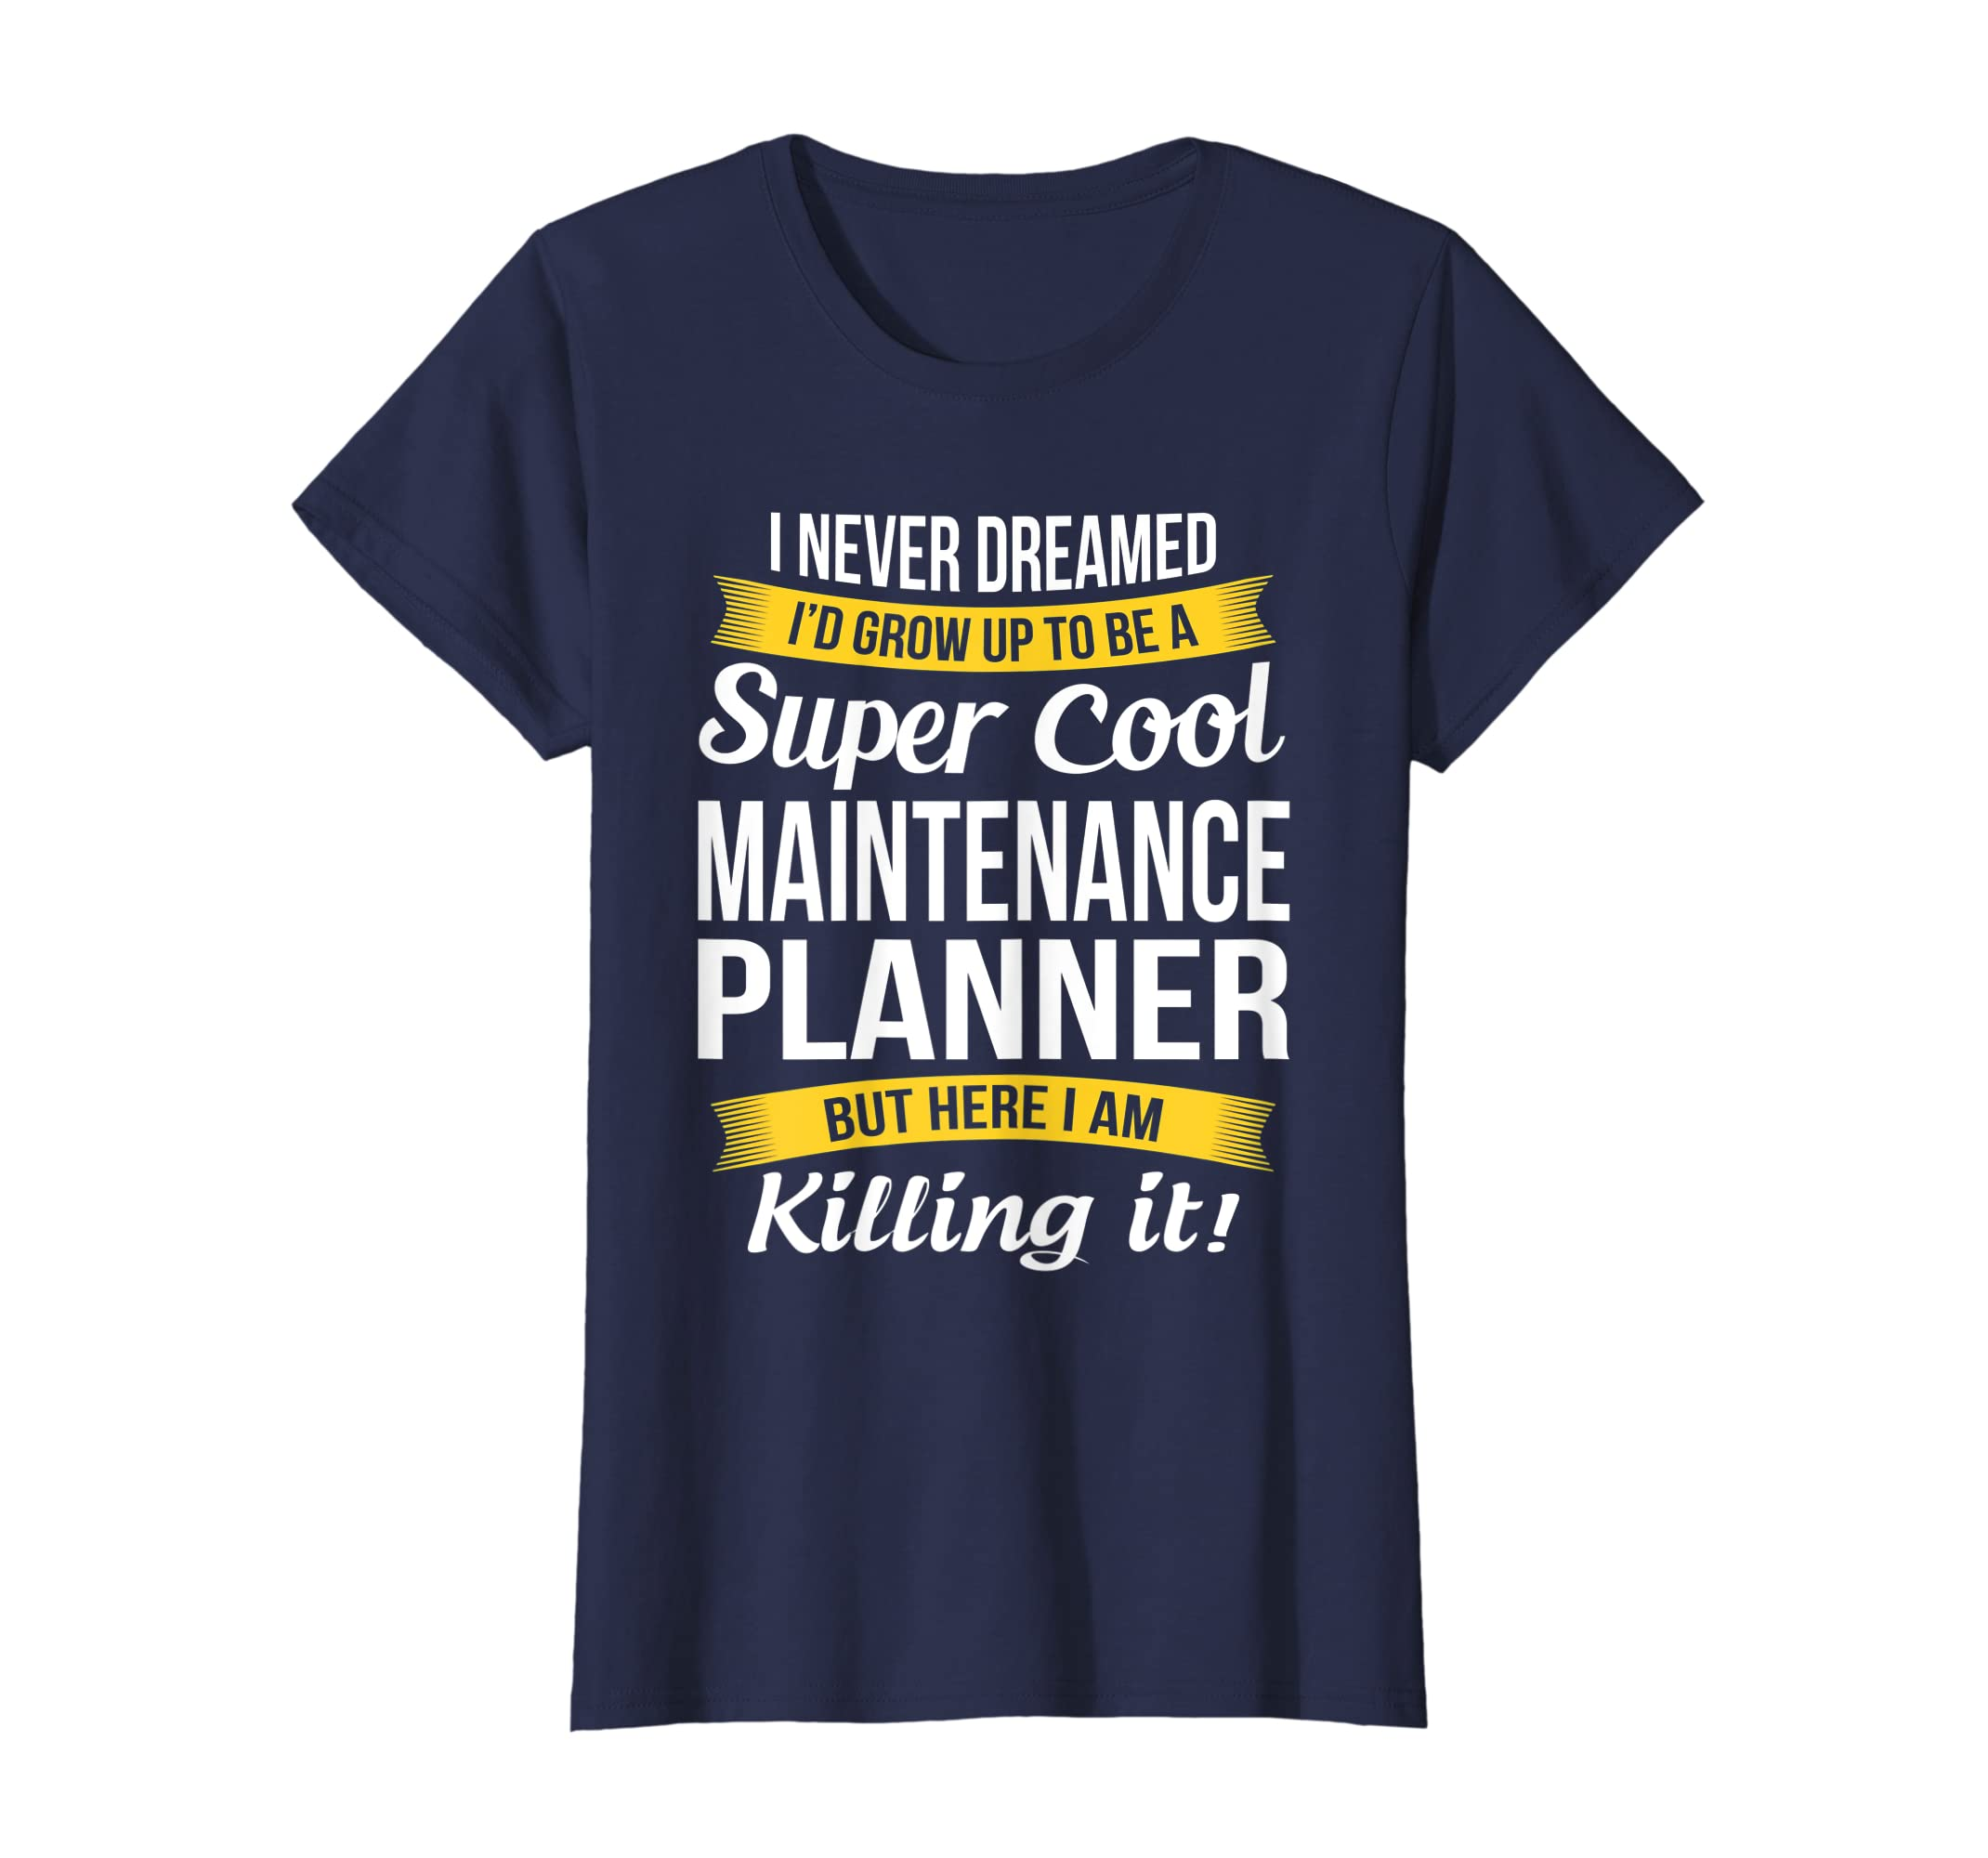 38516dd06 Amazon.com: Super Cool Maintenance Planner T-Shirt Funny Gift: Clothing